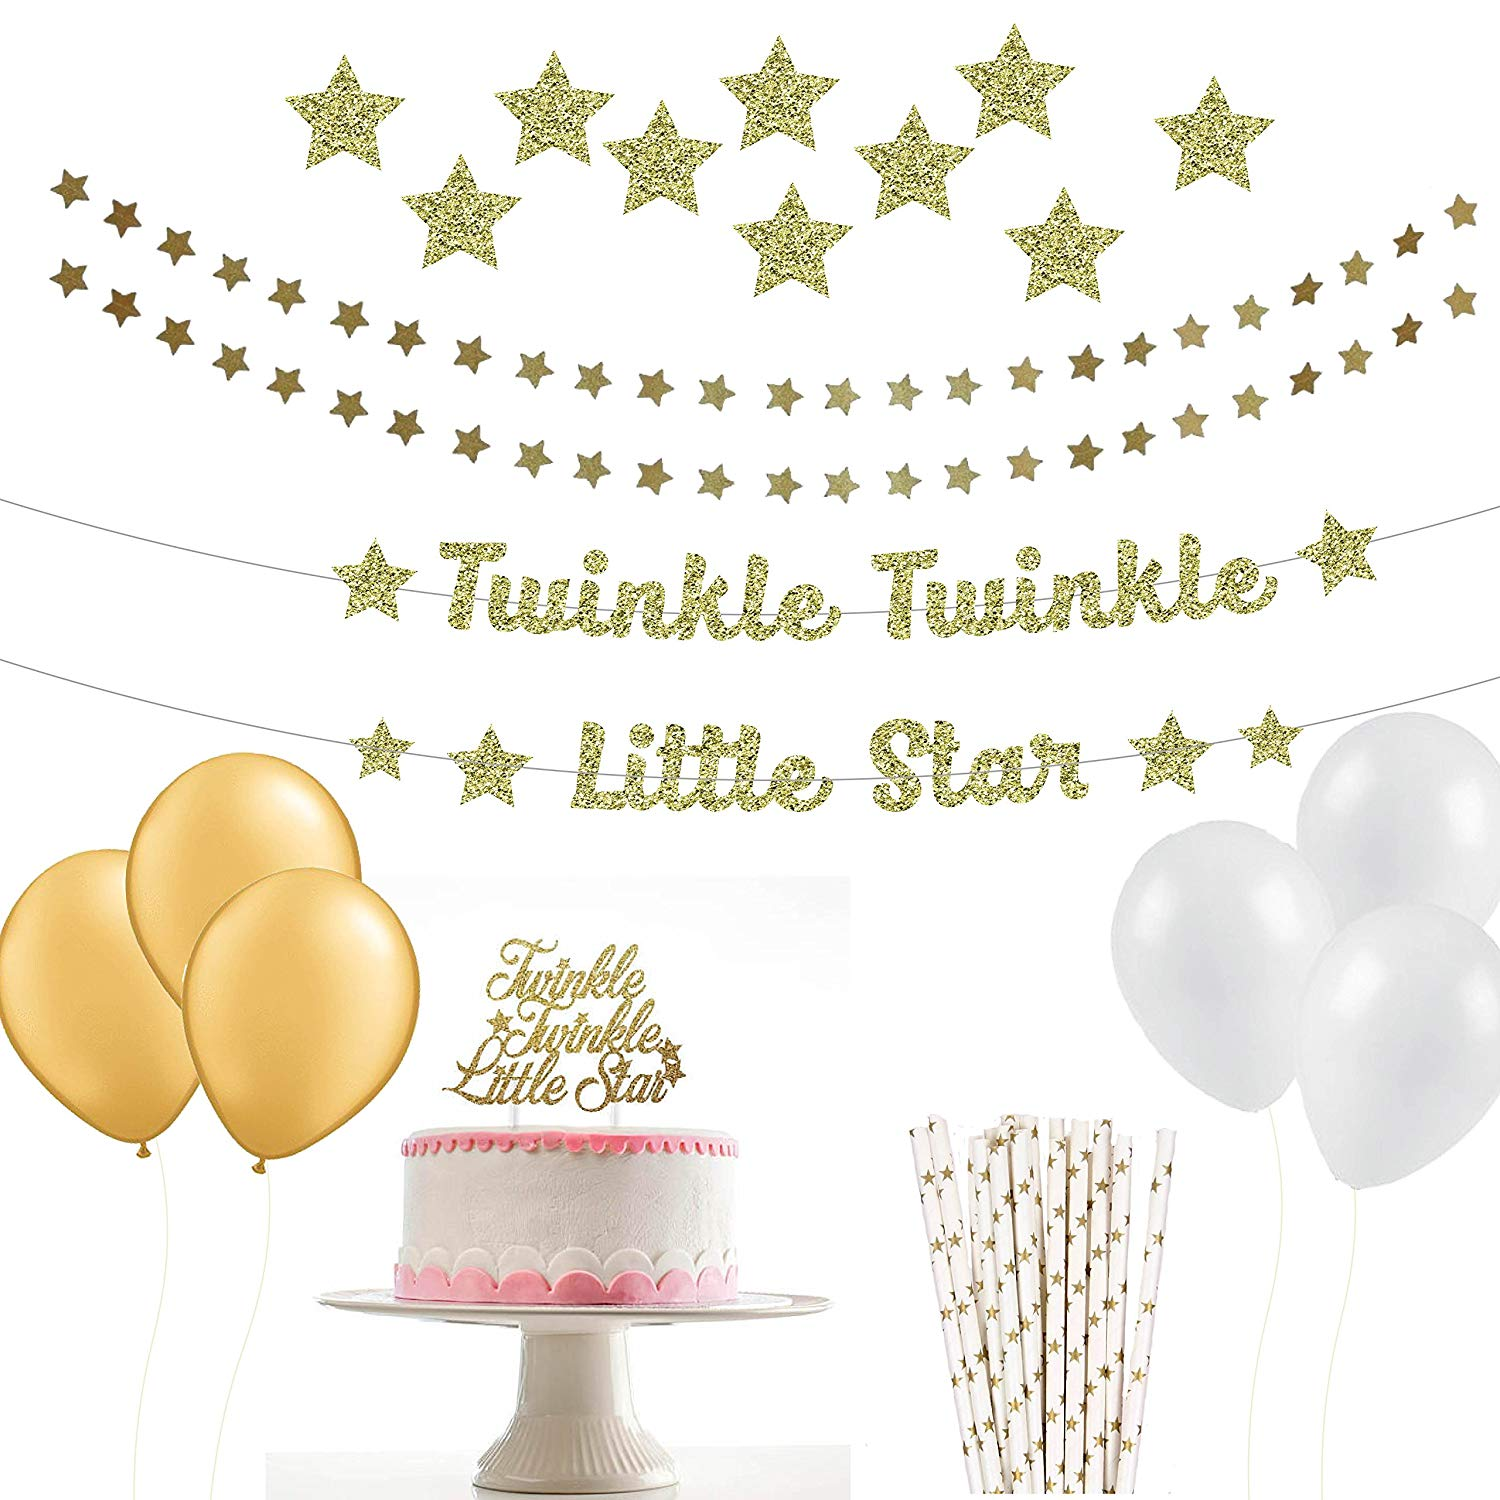 Twinkle Twinkle Little Star Party Package (Without Advice Cards).